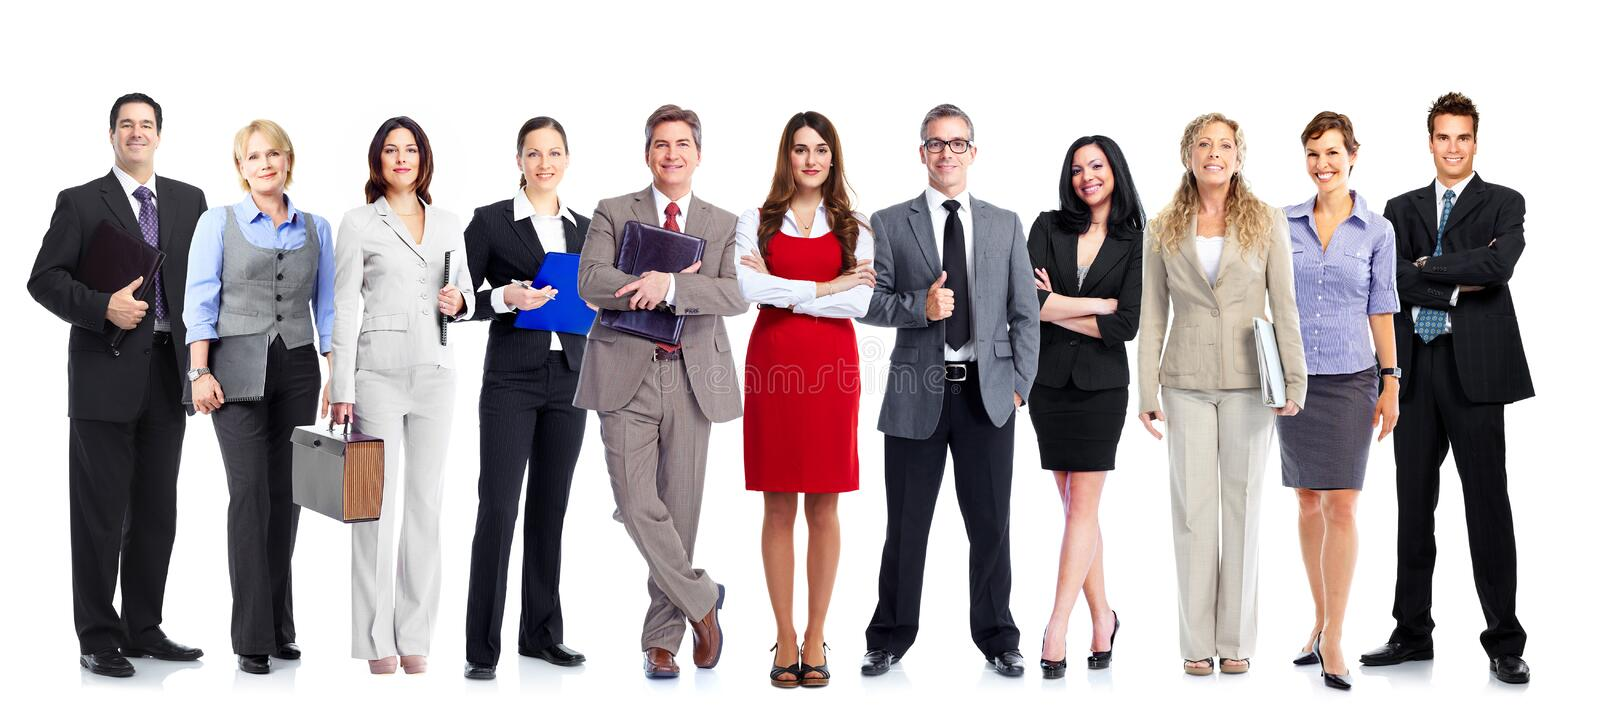 Business people group. stock photos